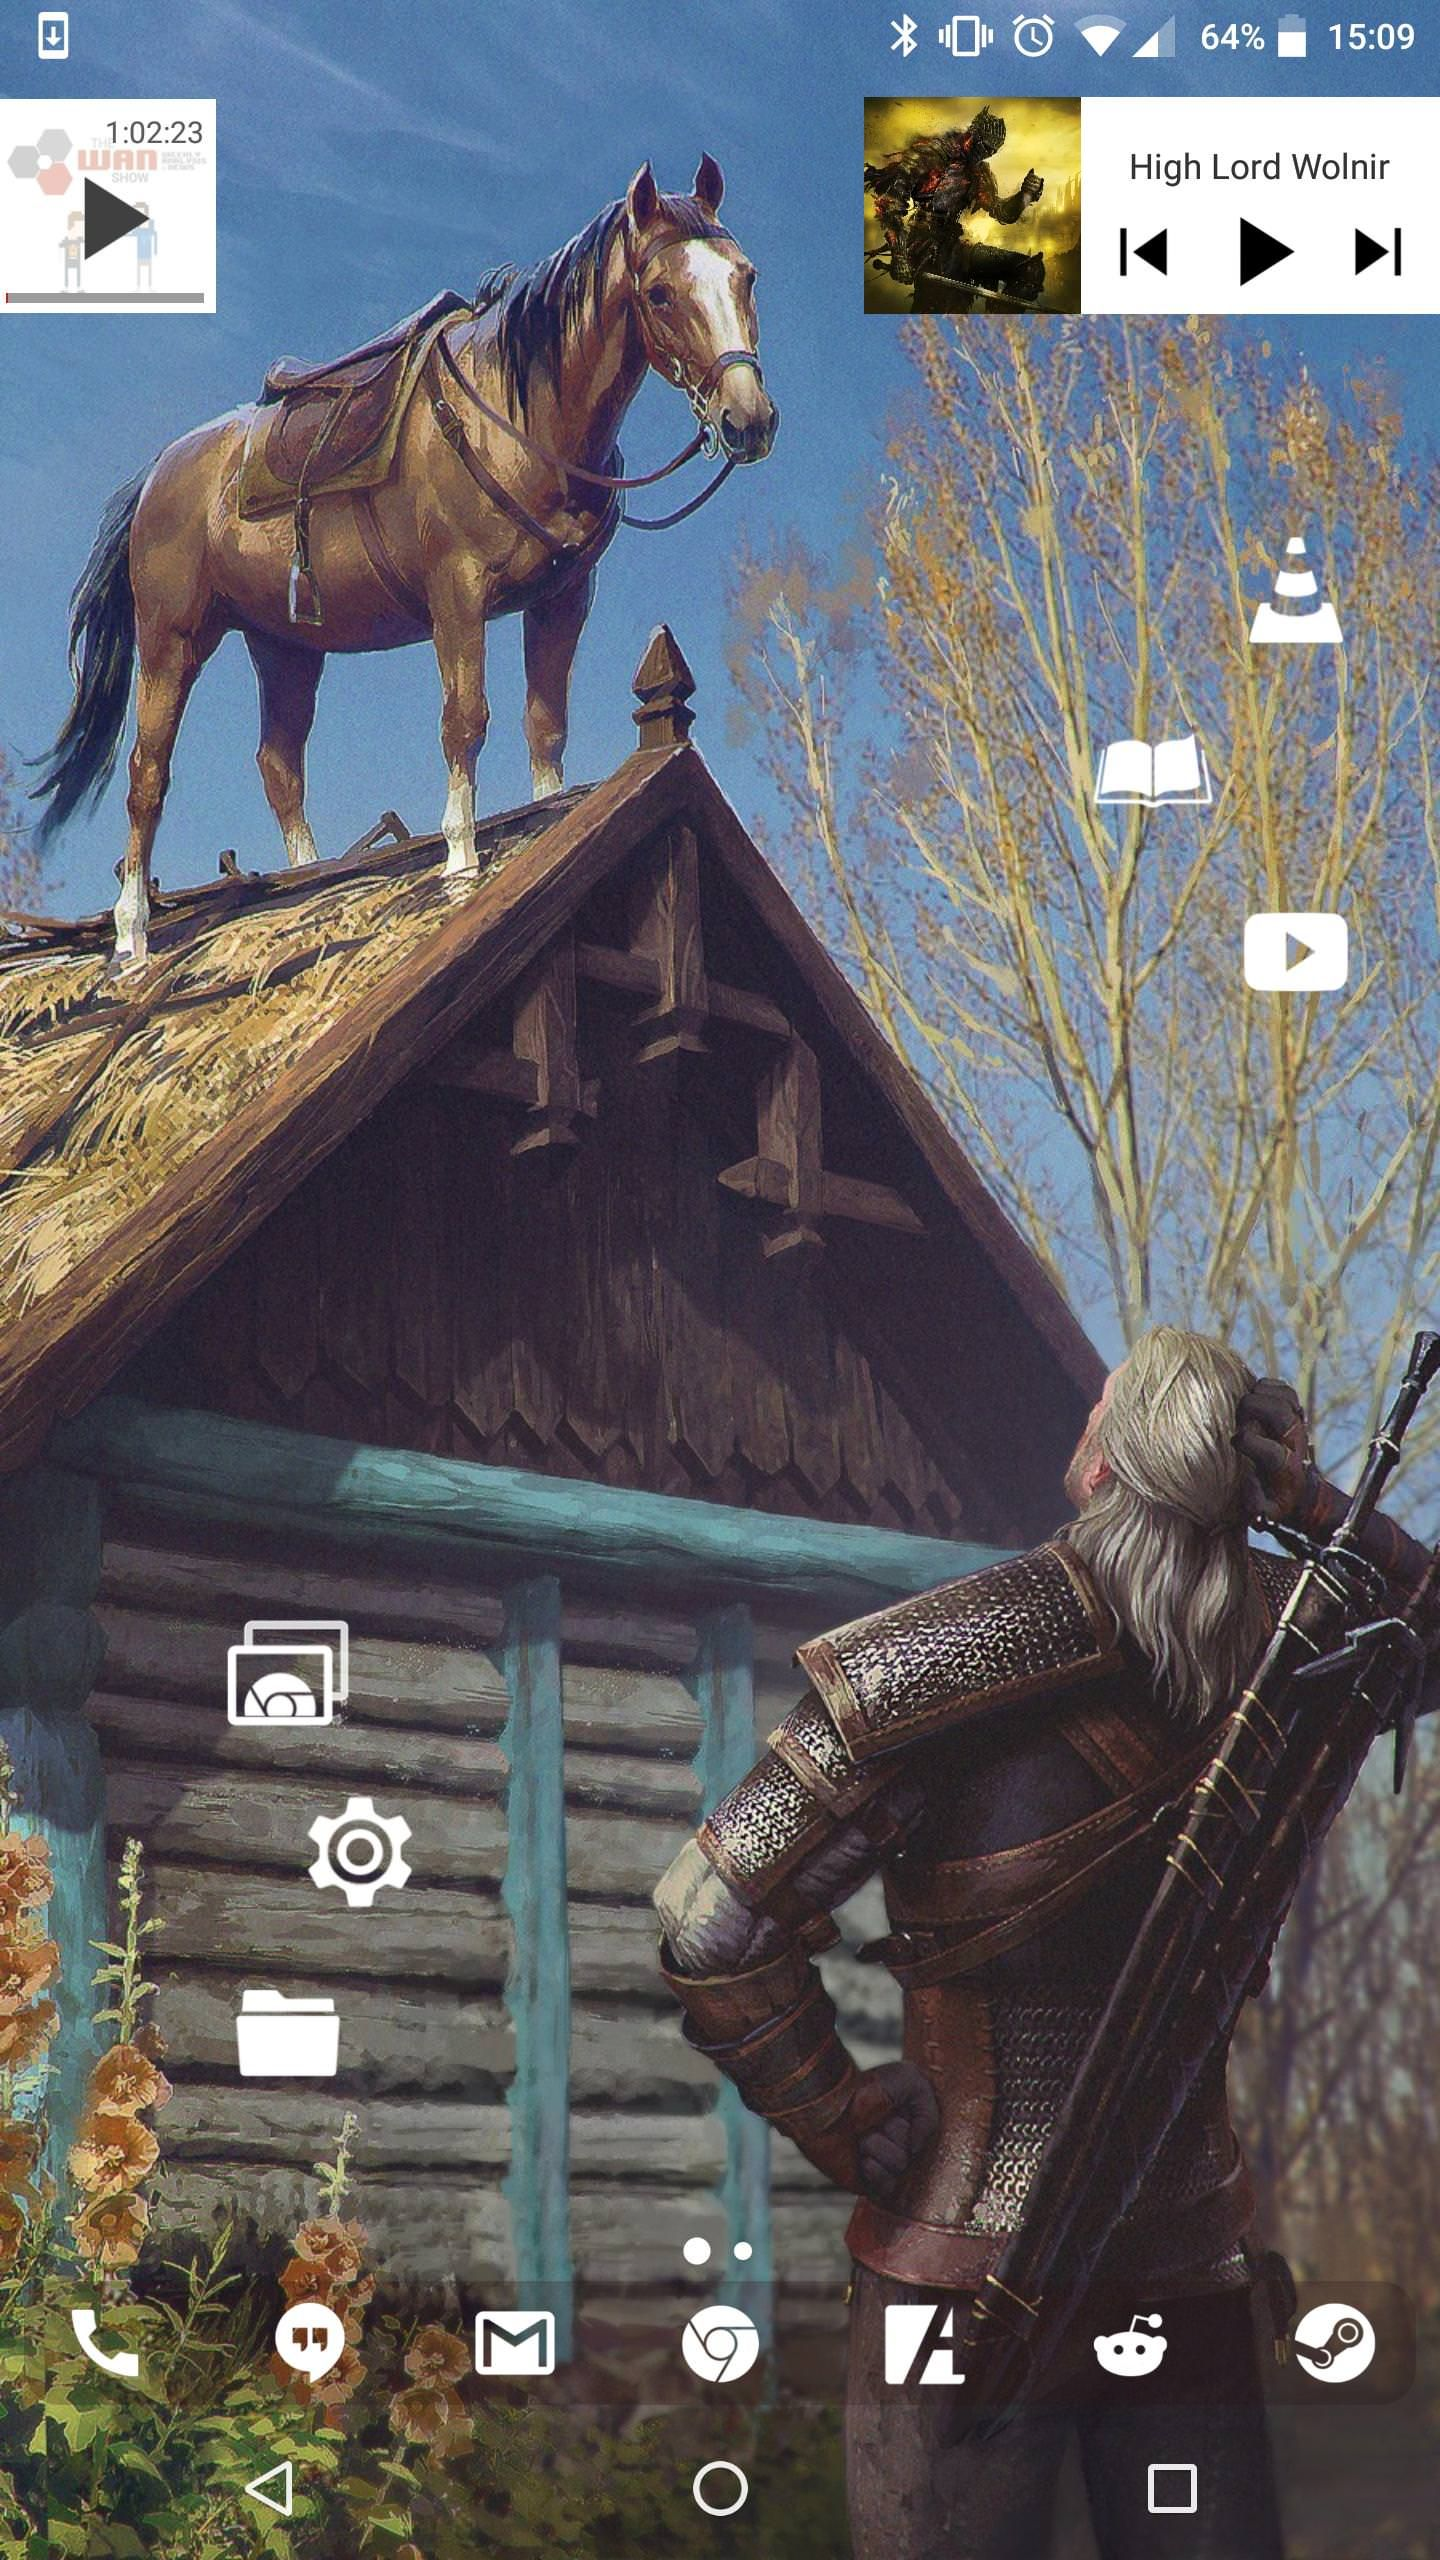 Witcher 3 wild hunt, Wild hunt and Phone wallpapers on